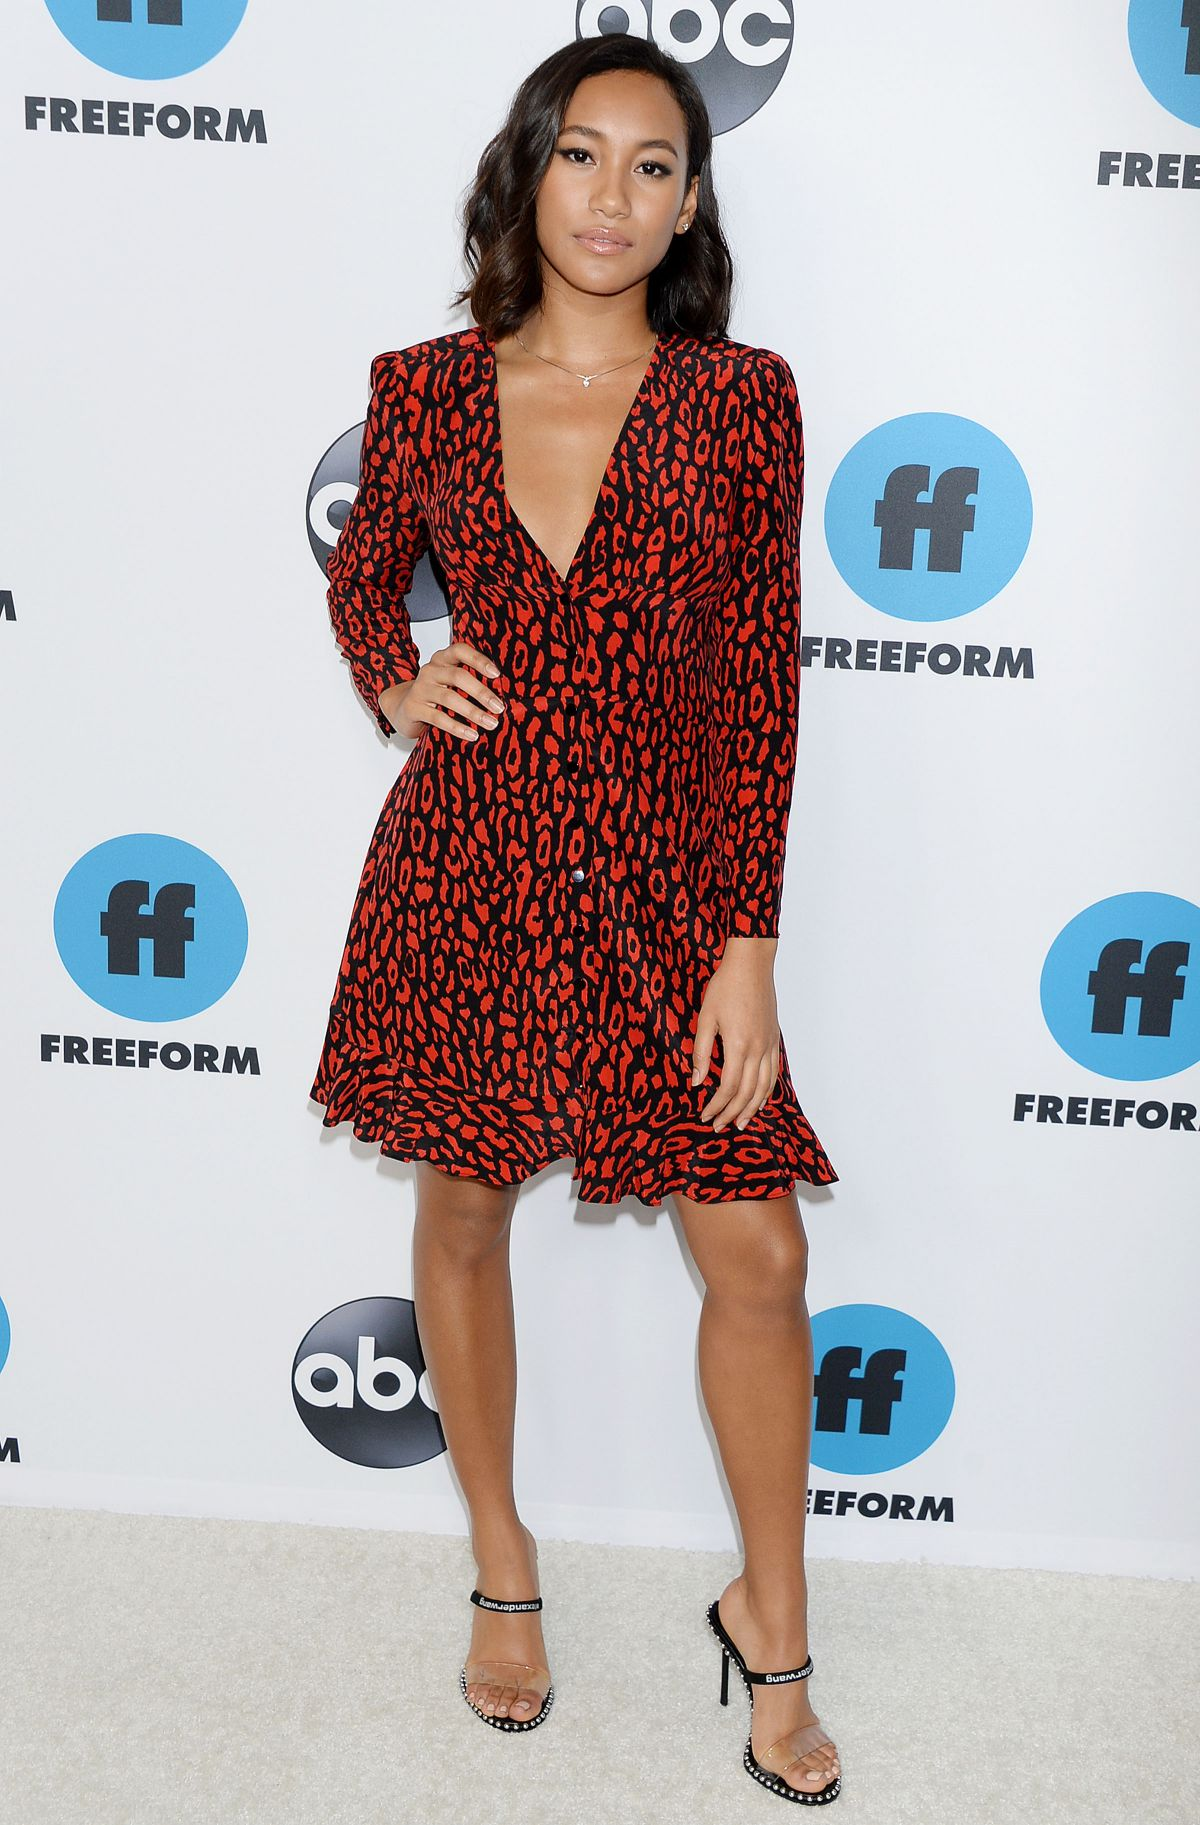 ¿Cuánto mide Sydney Park? - Real height Sydney-park-at-freeform-s-tca-winter-press-tour-in-los-angeles-02-05-2019-1